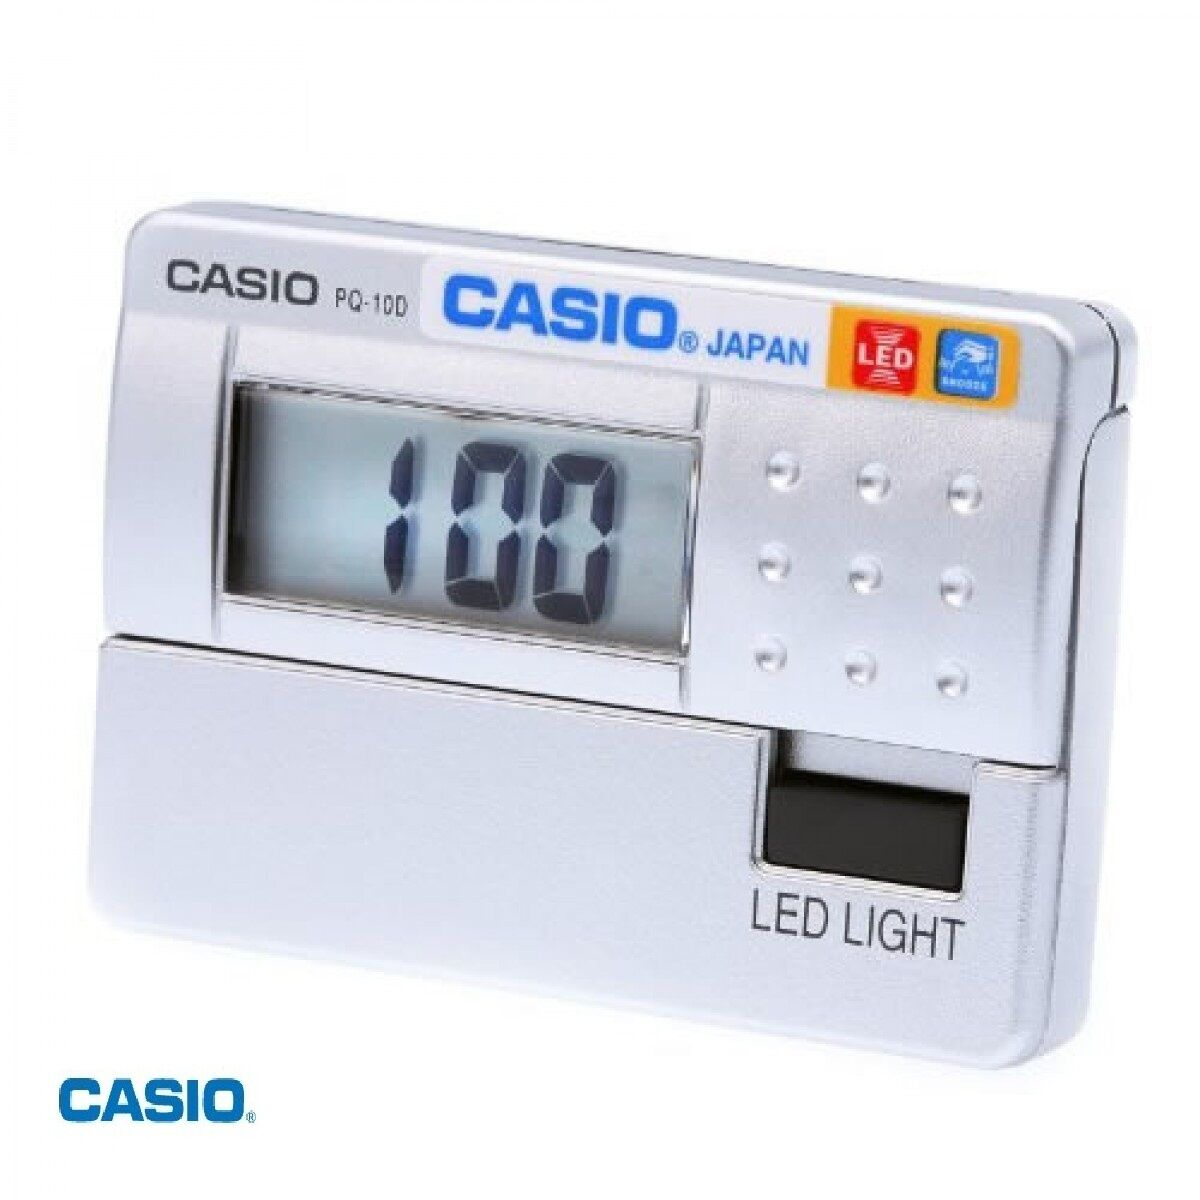 Small Led Alarm Clock Casio New Pq 10d Small Silver Led Digital Travel Lcd